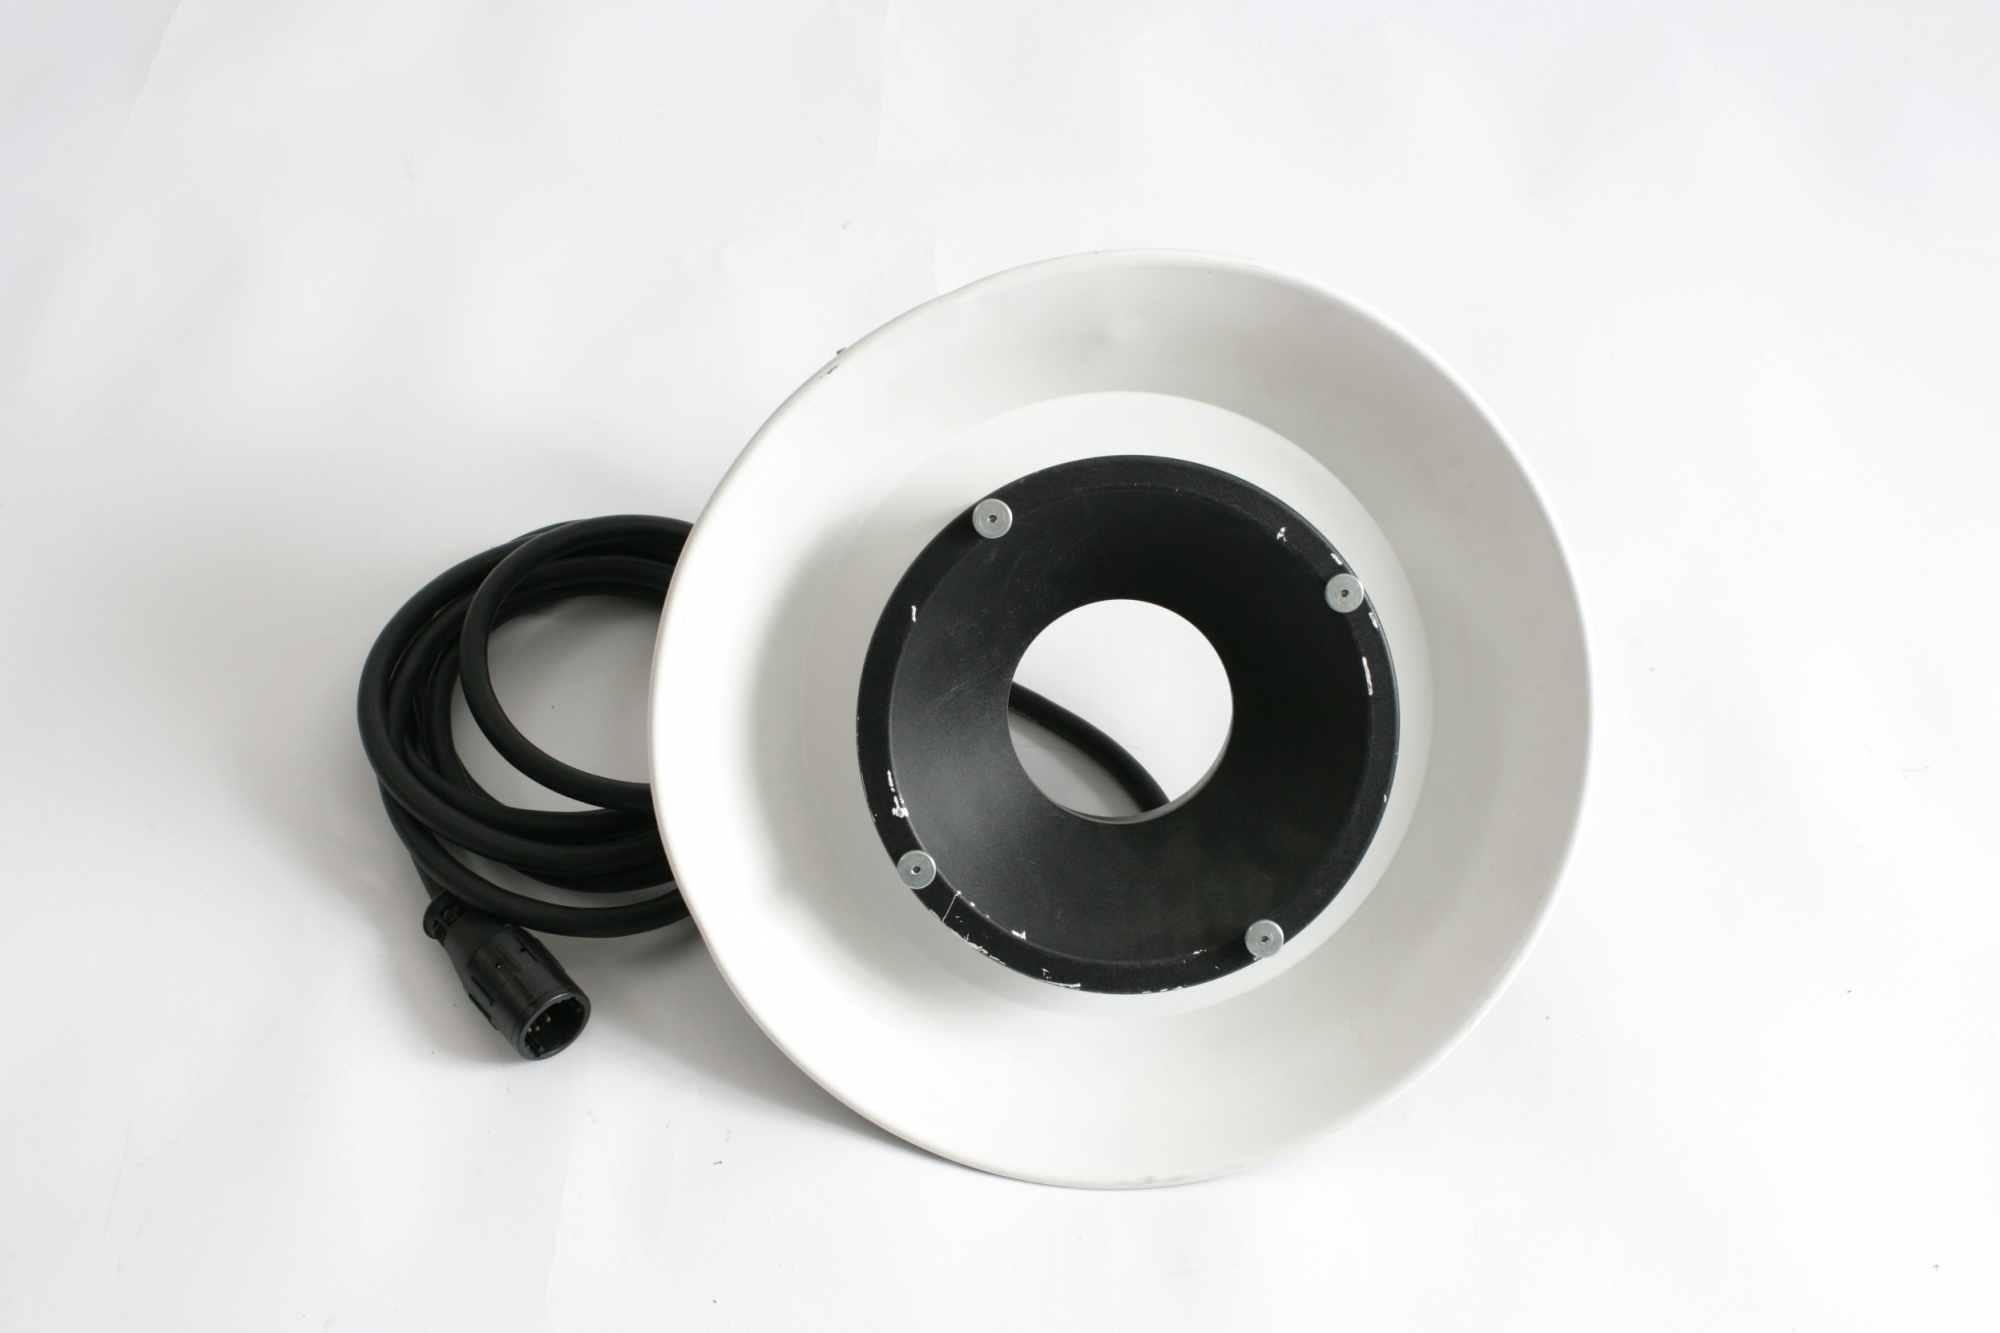 1 x Profoto ring flash. £15-00 per day